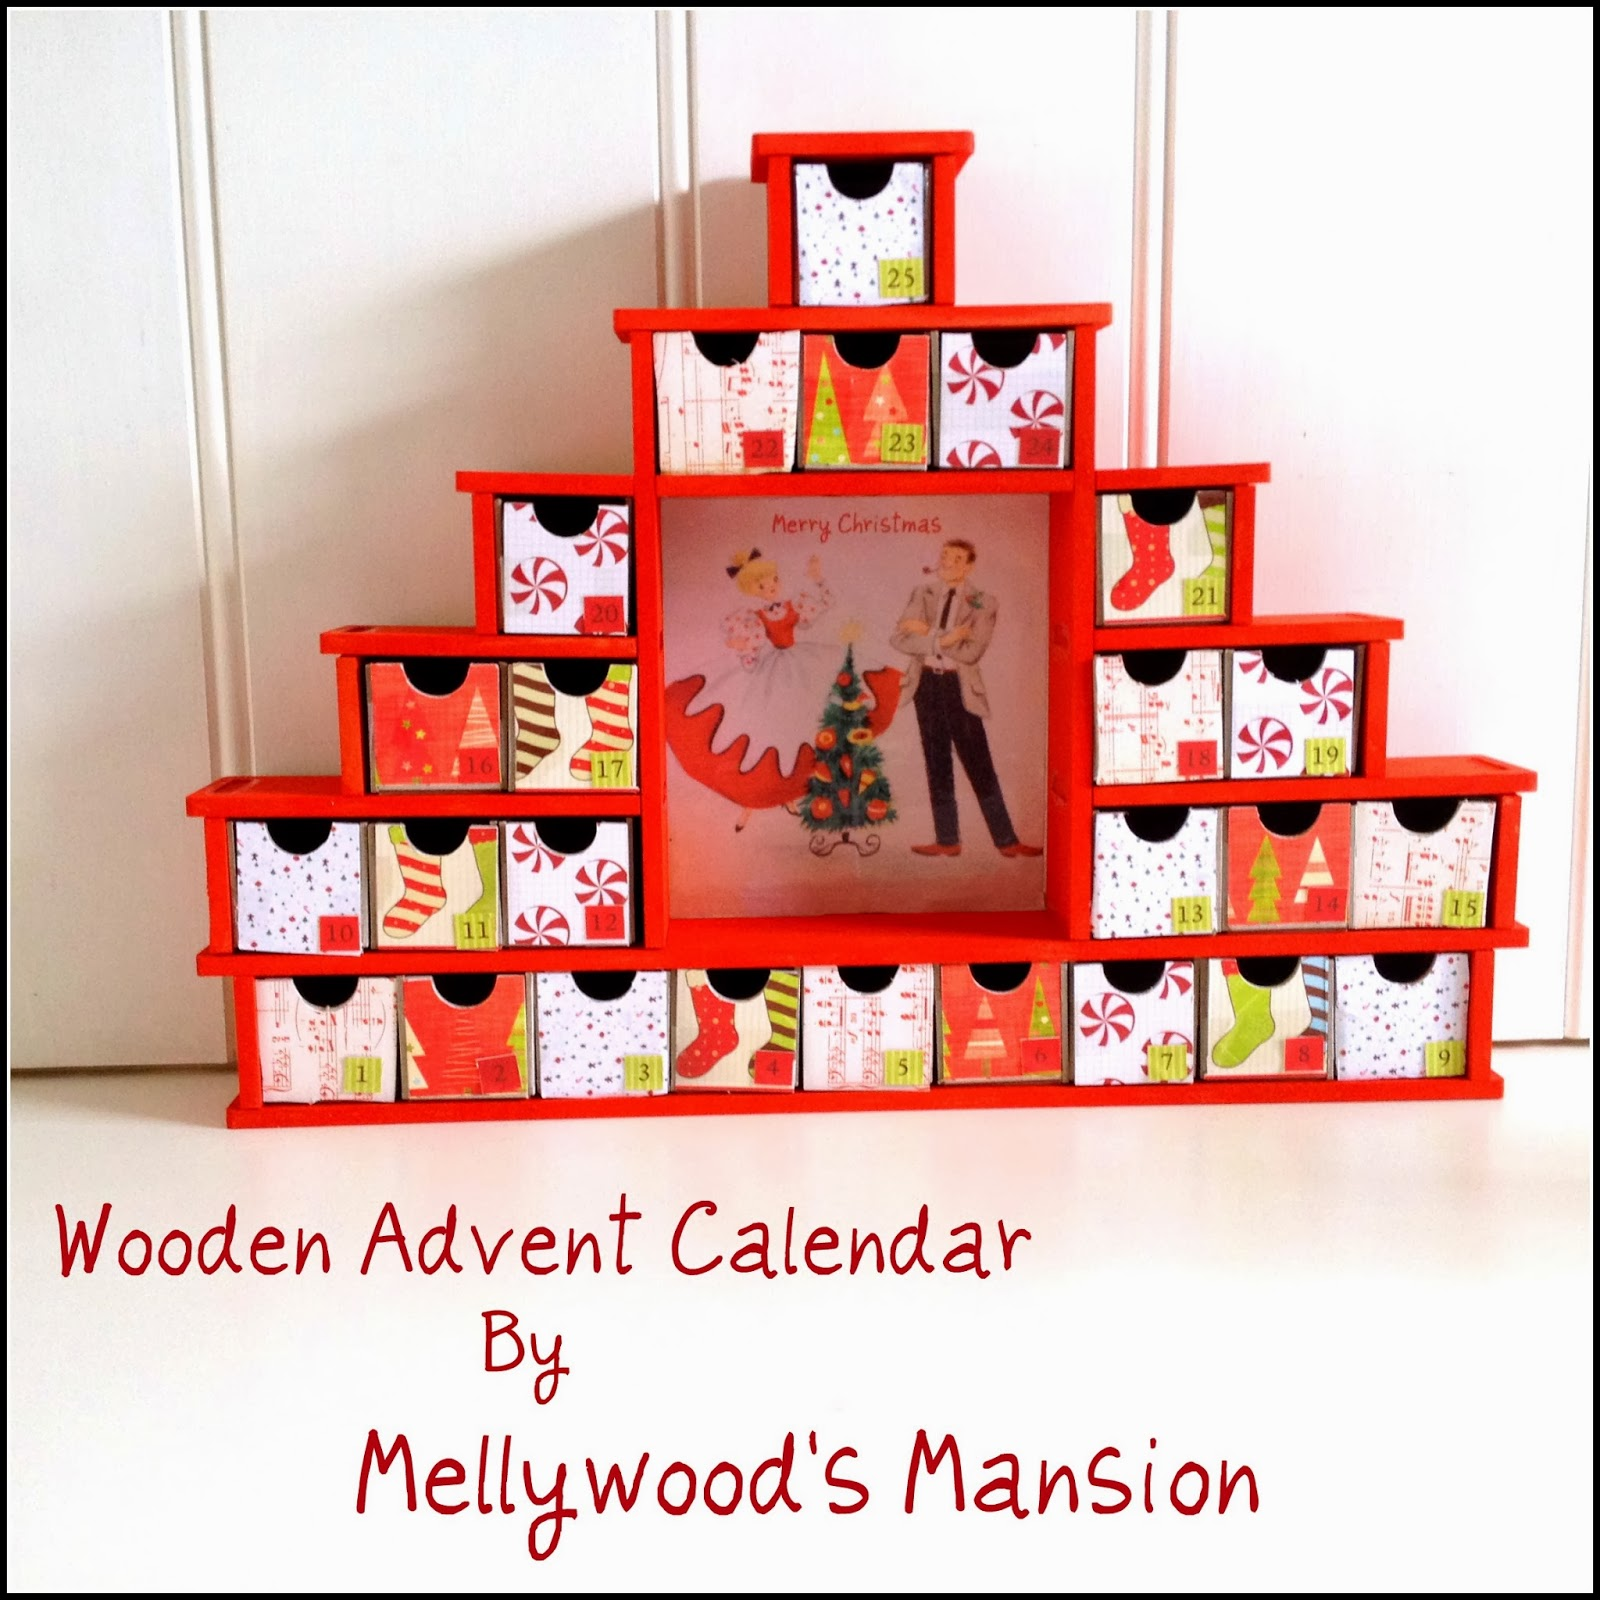 Self Made Calendar Photo : Our pinteresting family wooden advent calendar by